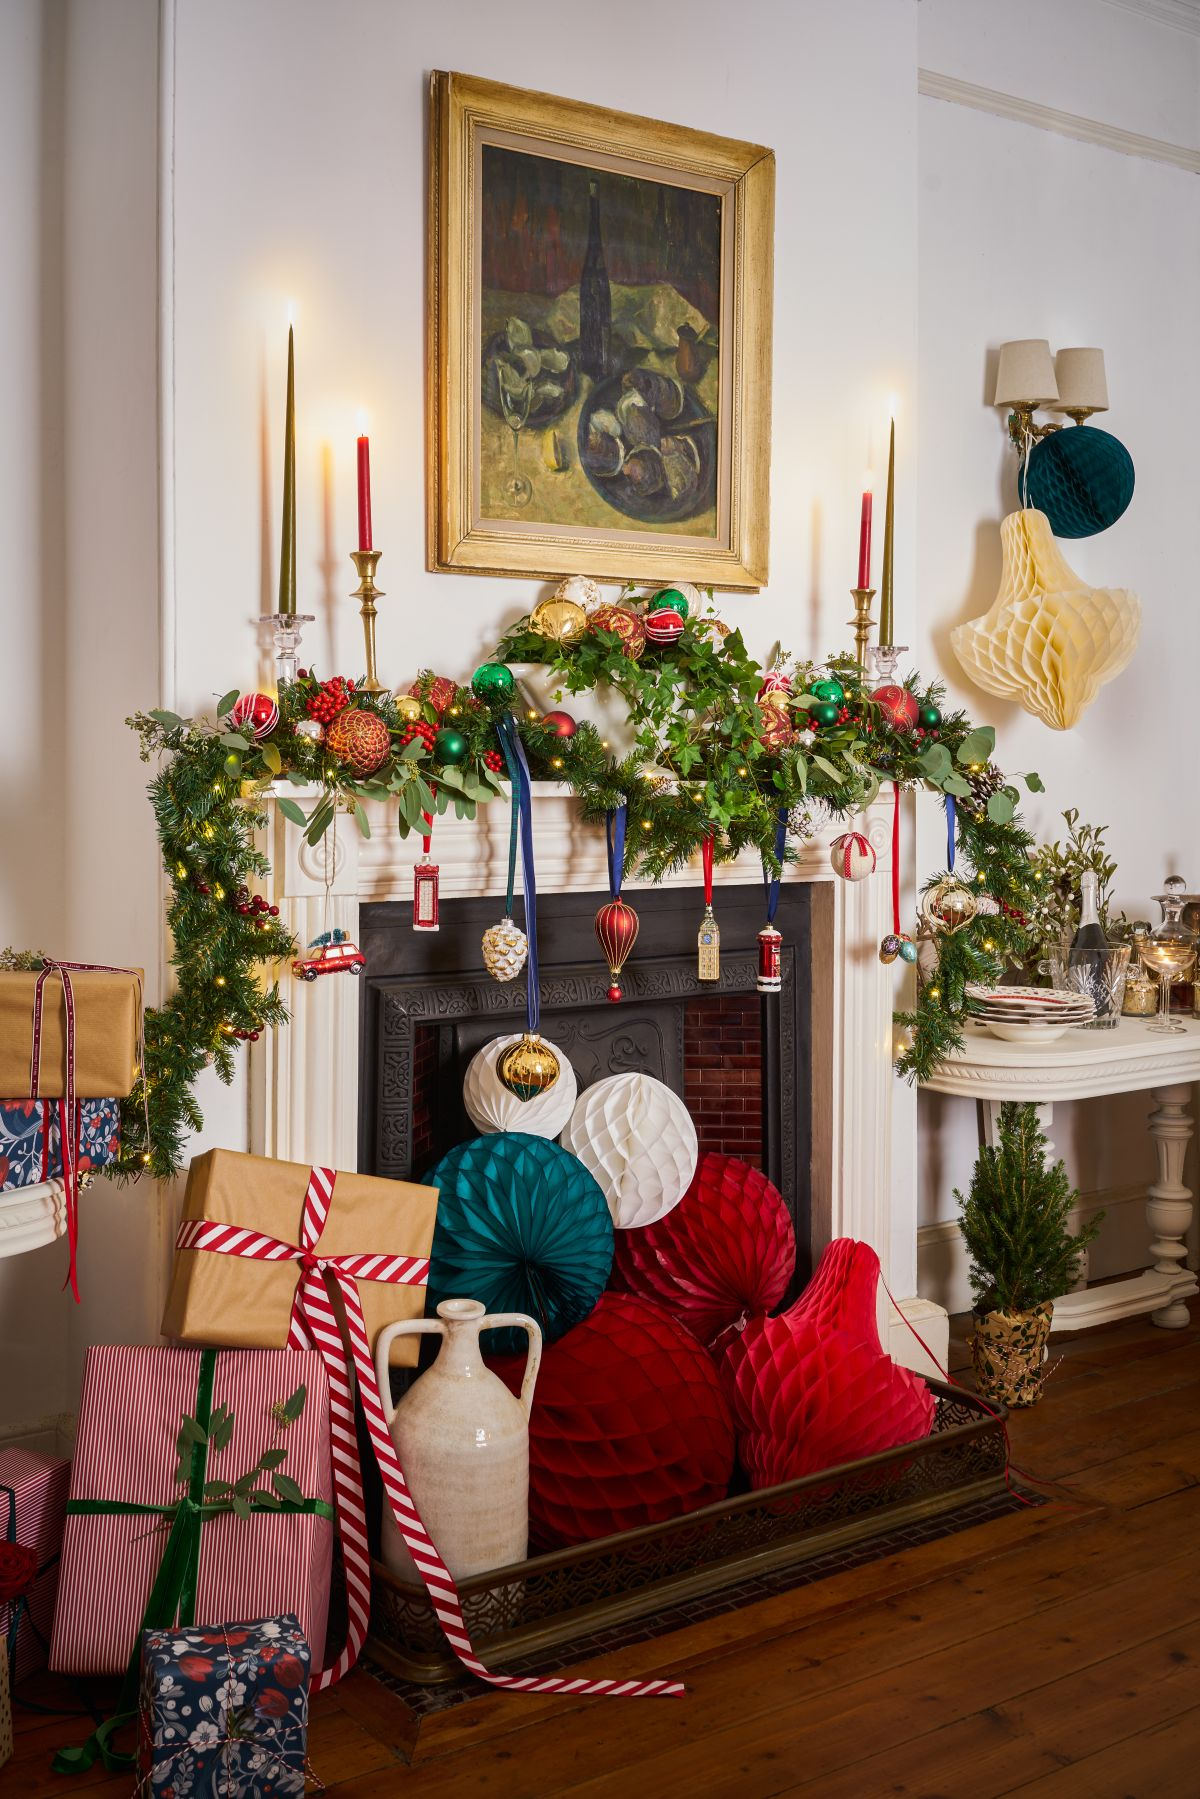 30 striking Christmas decoration ideas to make this year's decor the best yet